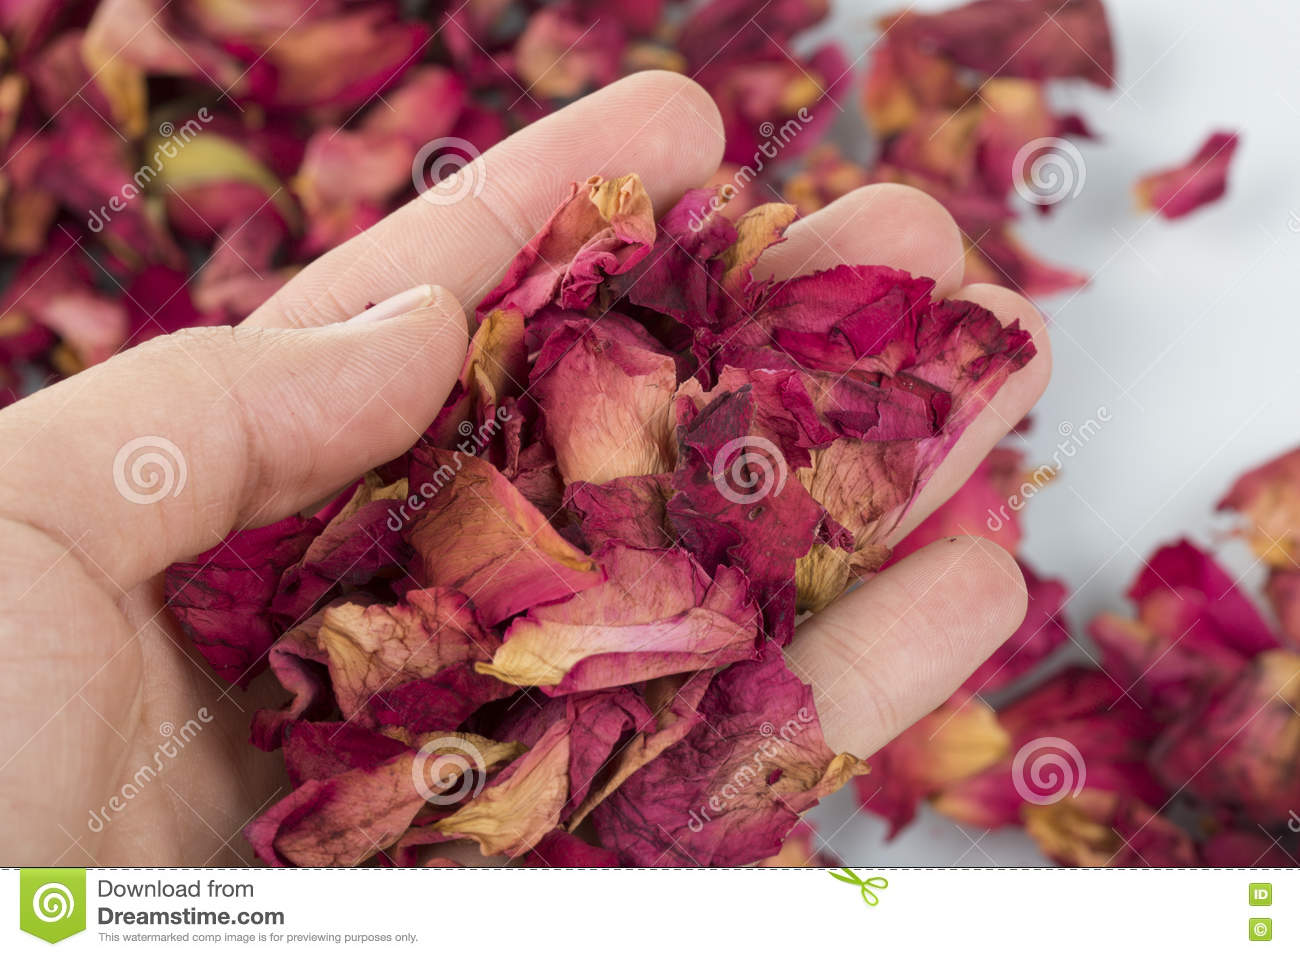 Dried rose petals stock image  Image of health, cosmetology